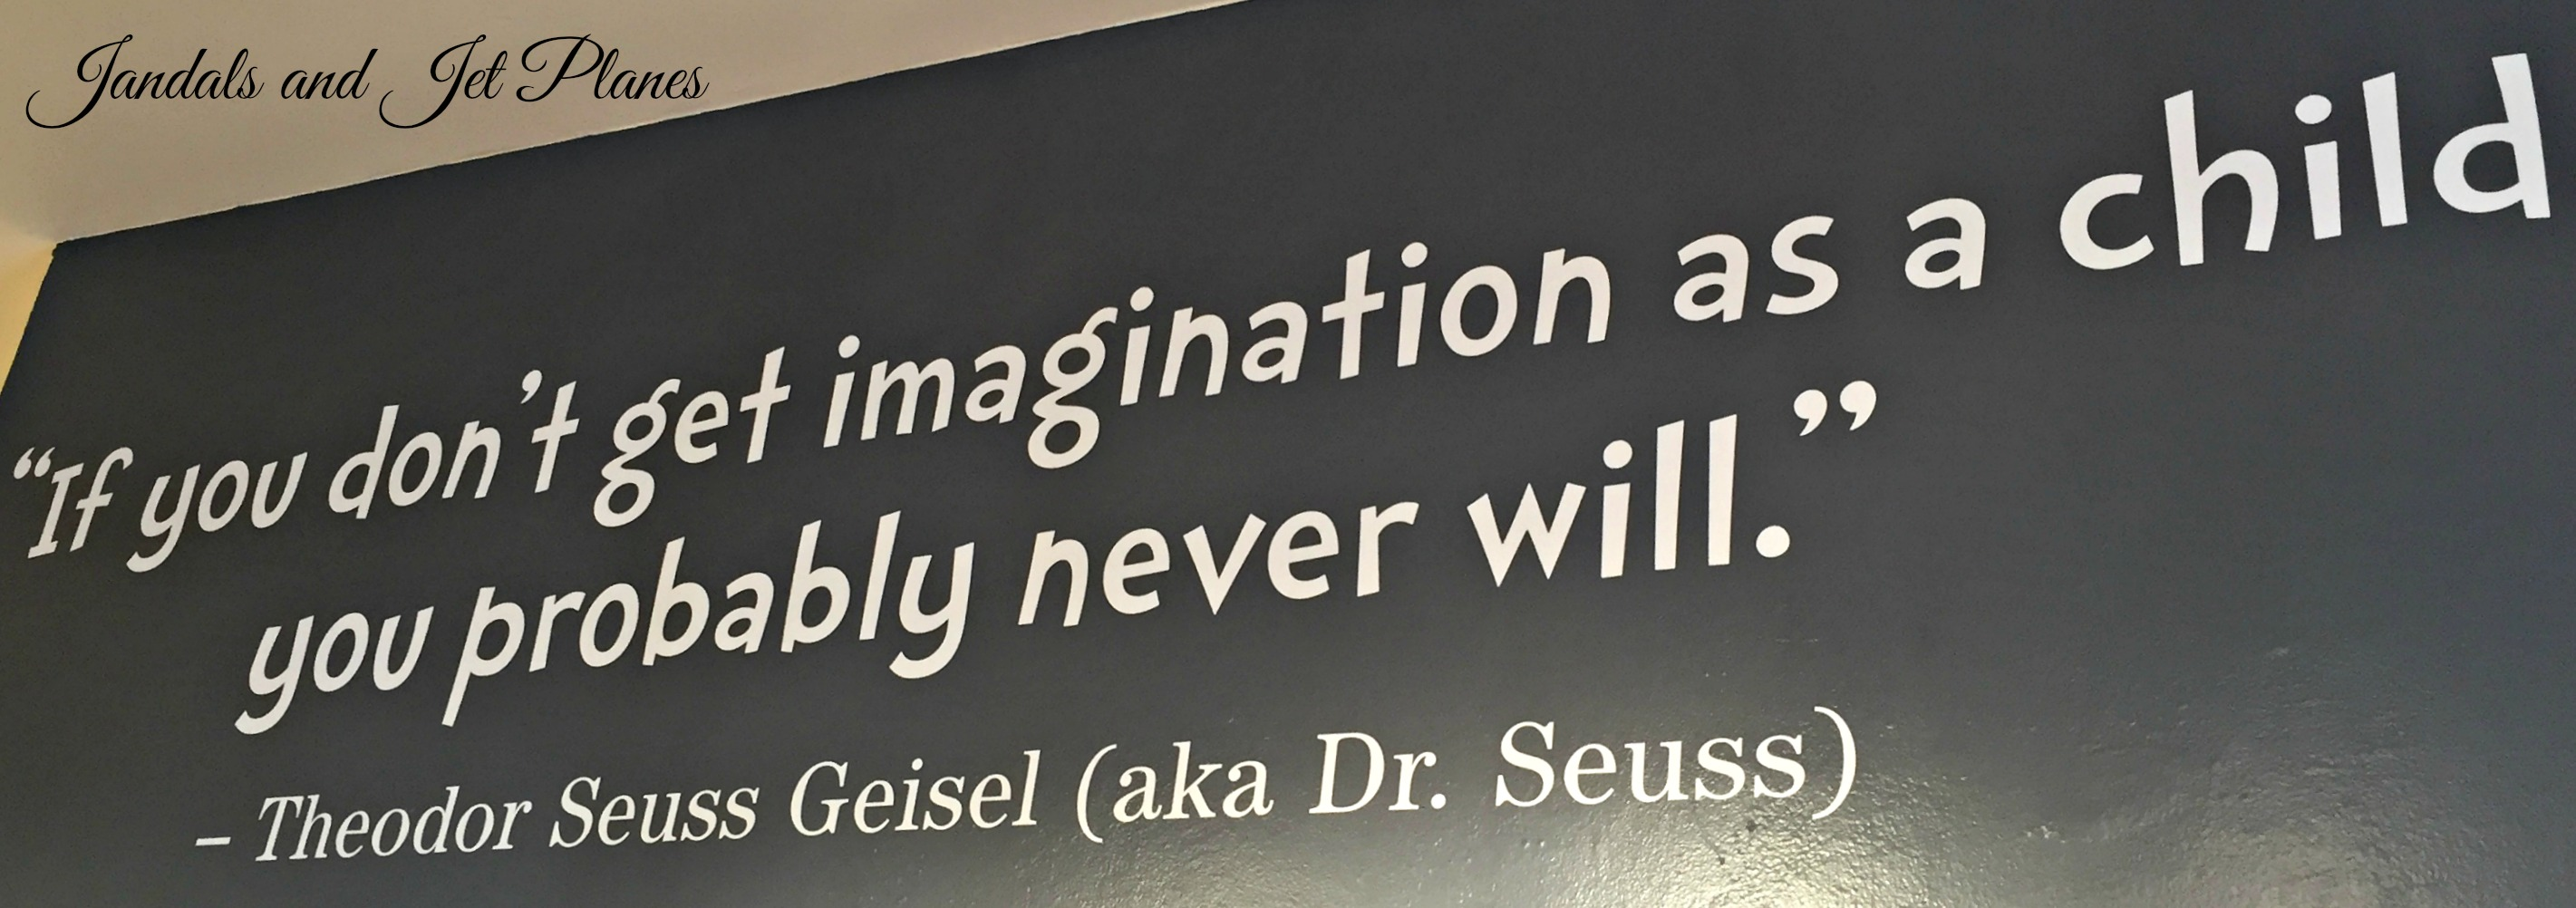 The Art of Dr  Seuss     Jandals and Jet Planes Dr  Seuss Quote Imagination Child